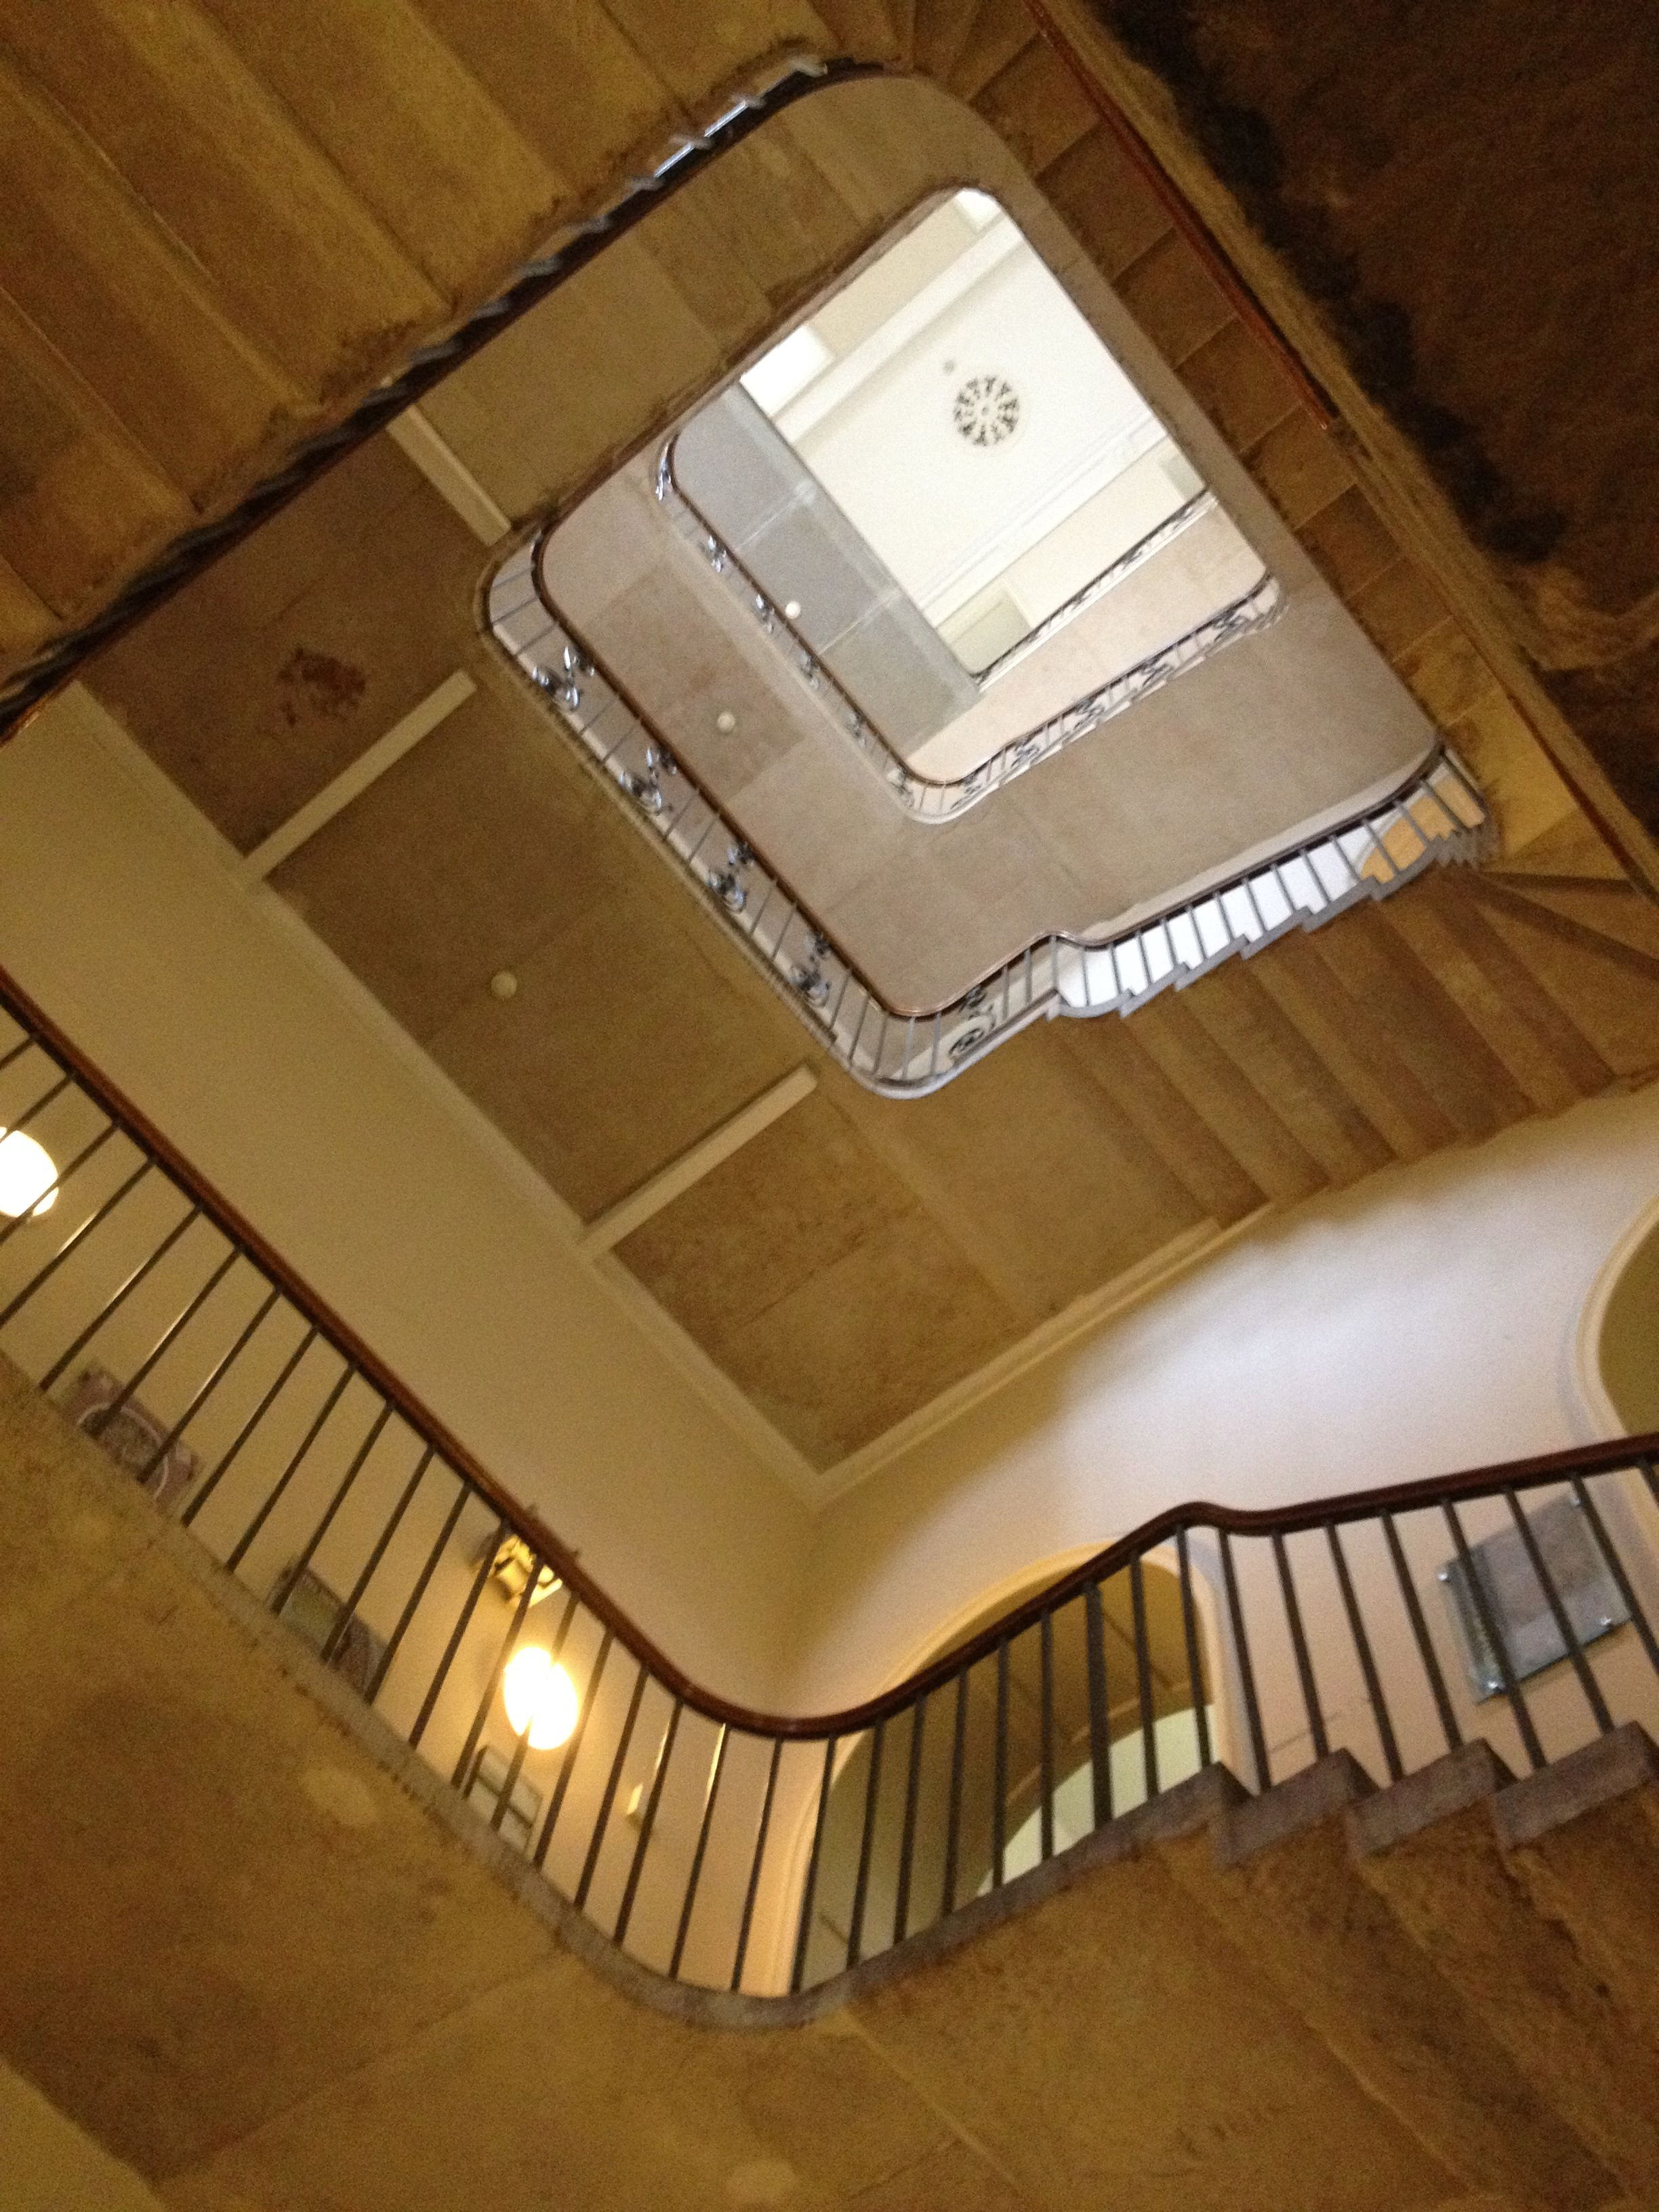 Yes It Is The Stamp Staircase Of Somerset House In London